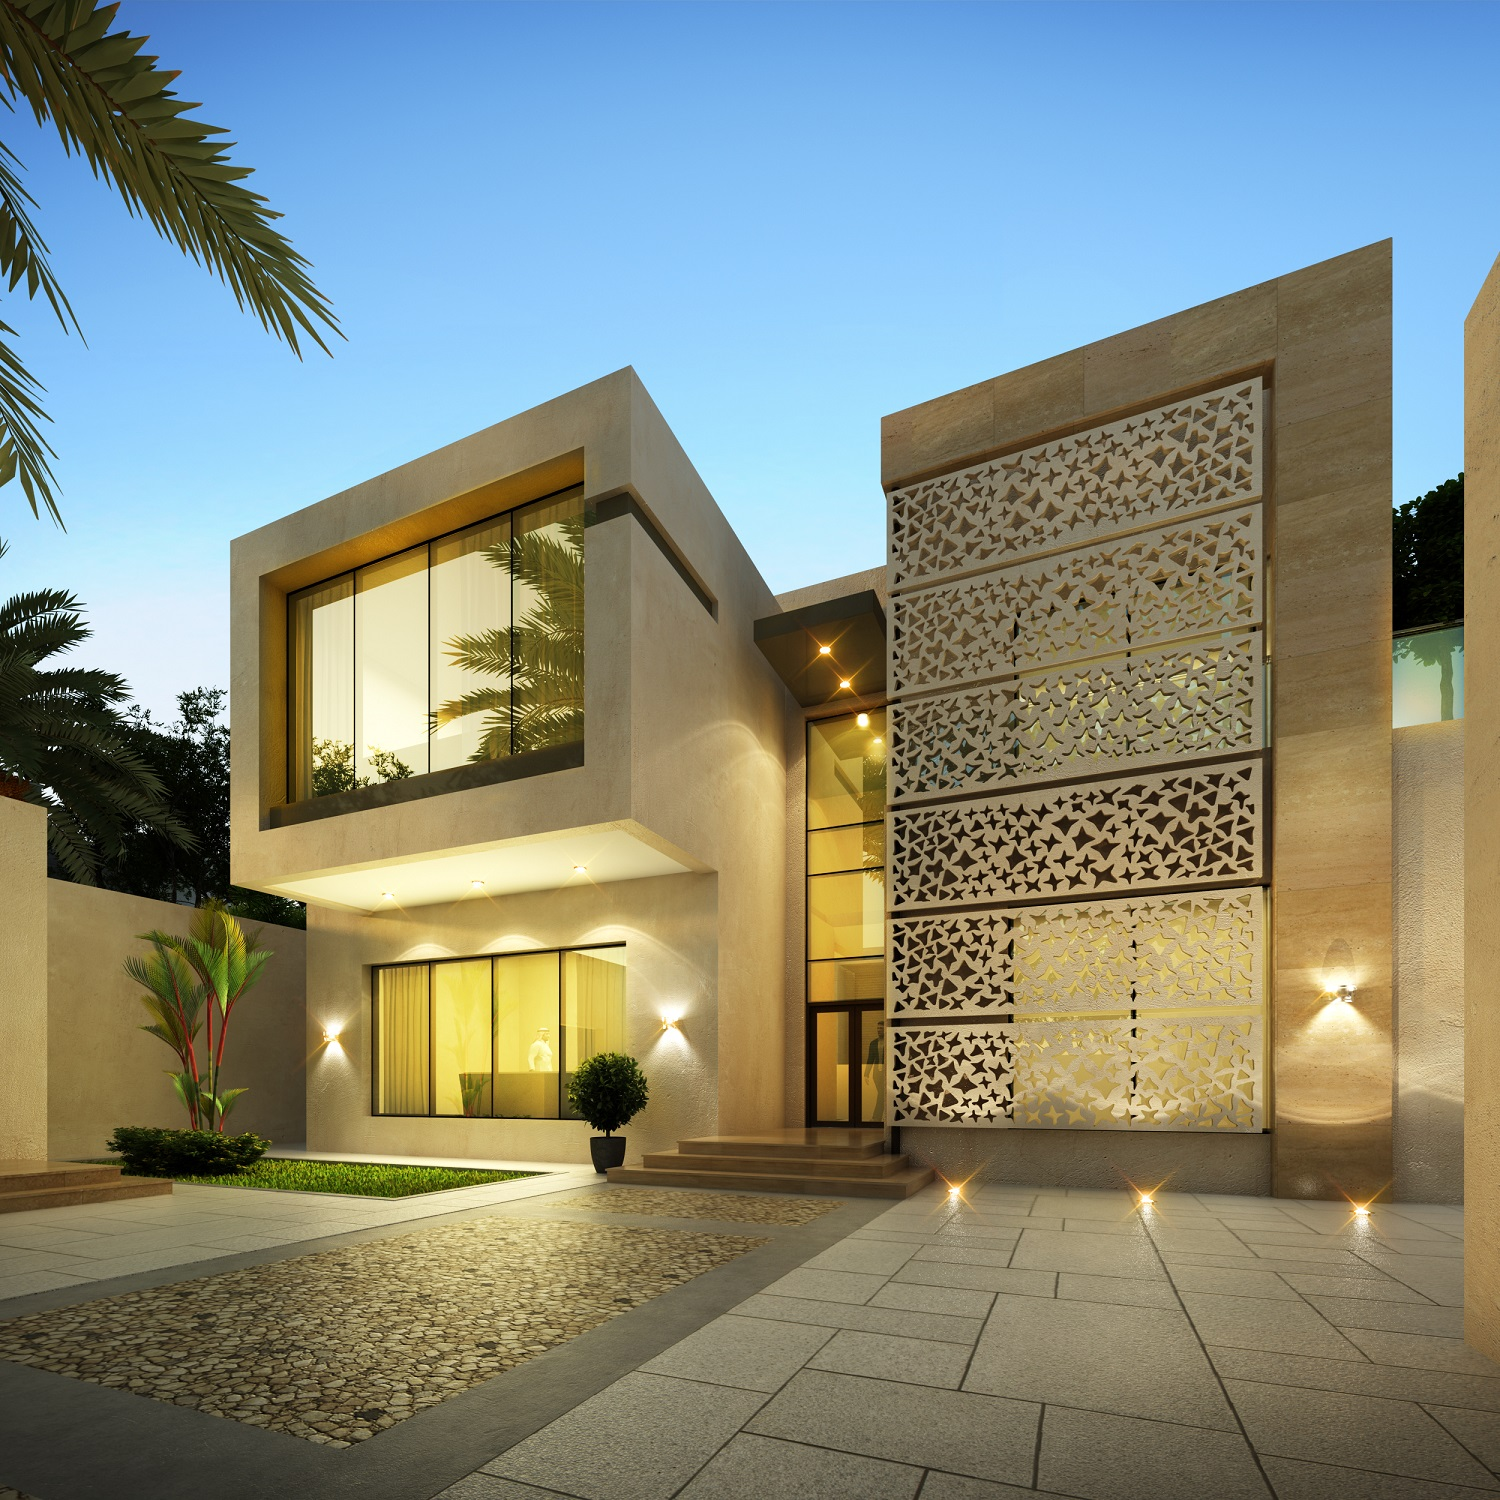 Architectural Design Consultants In Abu Dhabi